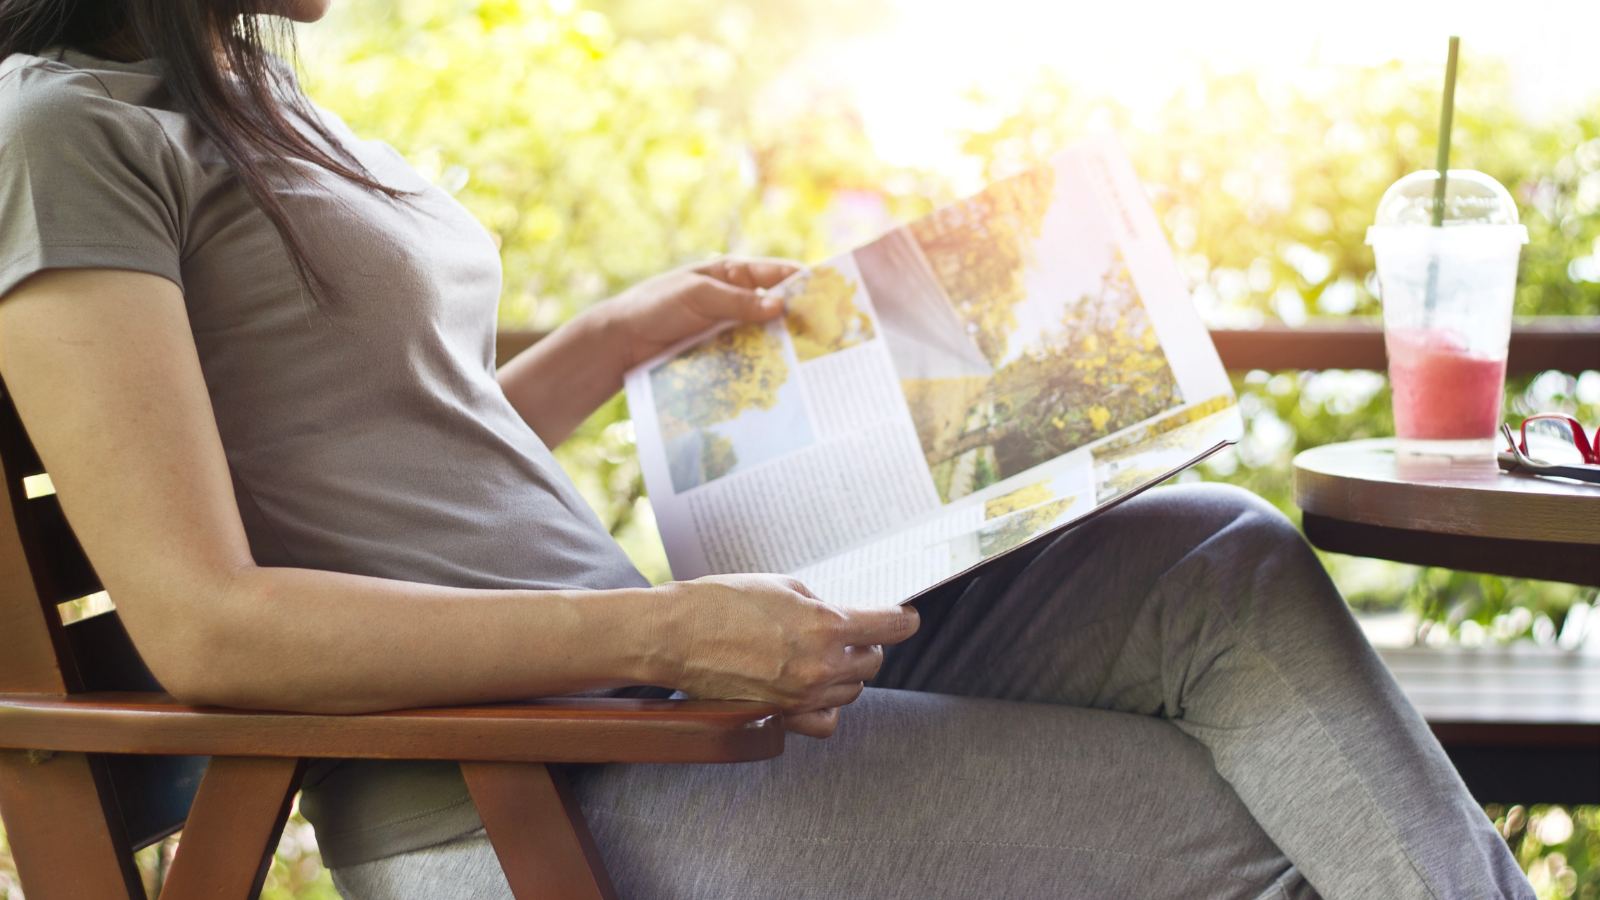 Woman relaxing by reading magazines also enjoying a strawberry smoothie